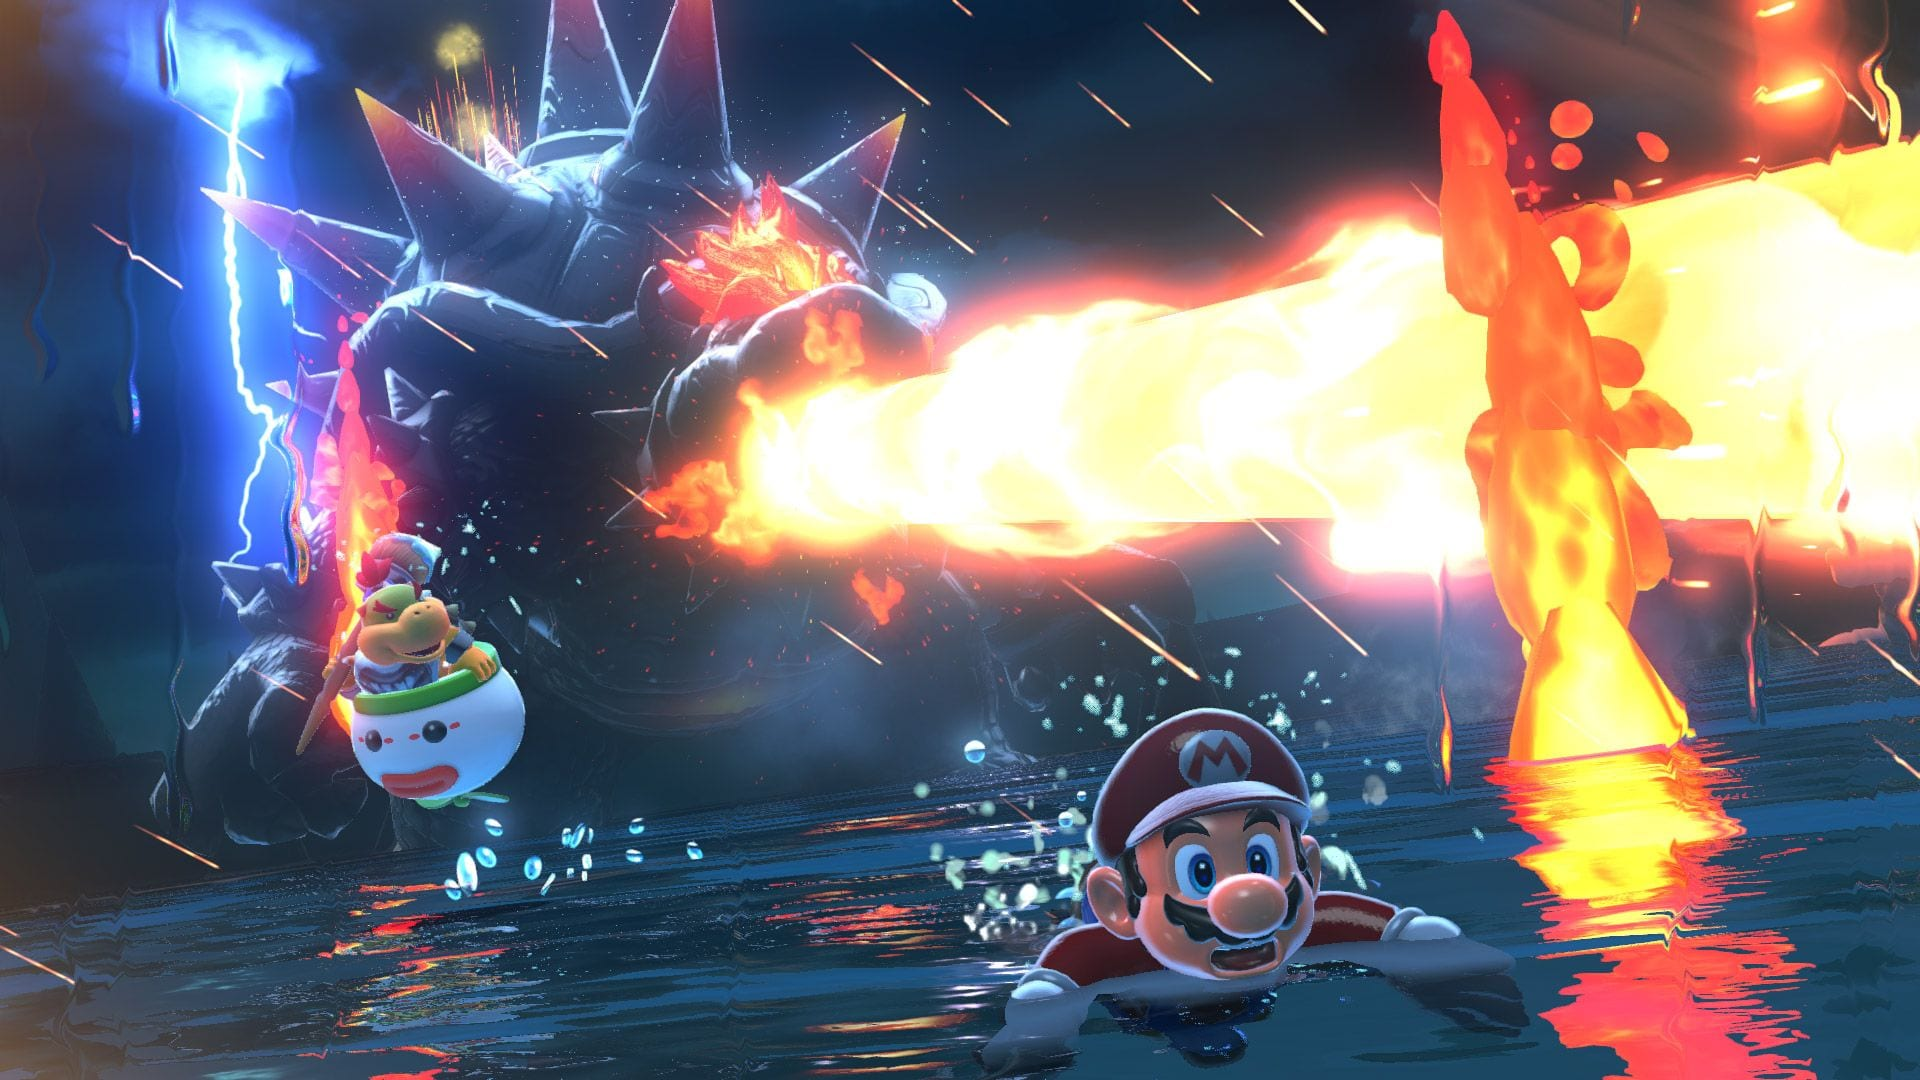 Super mario 3d world + bowser's fury install size